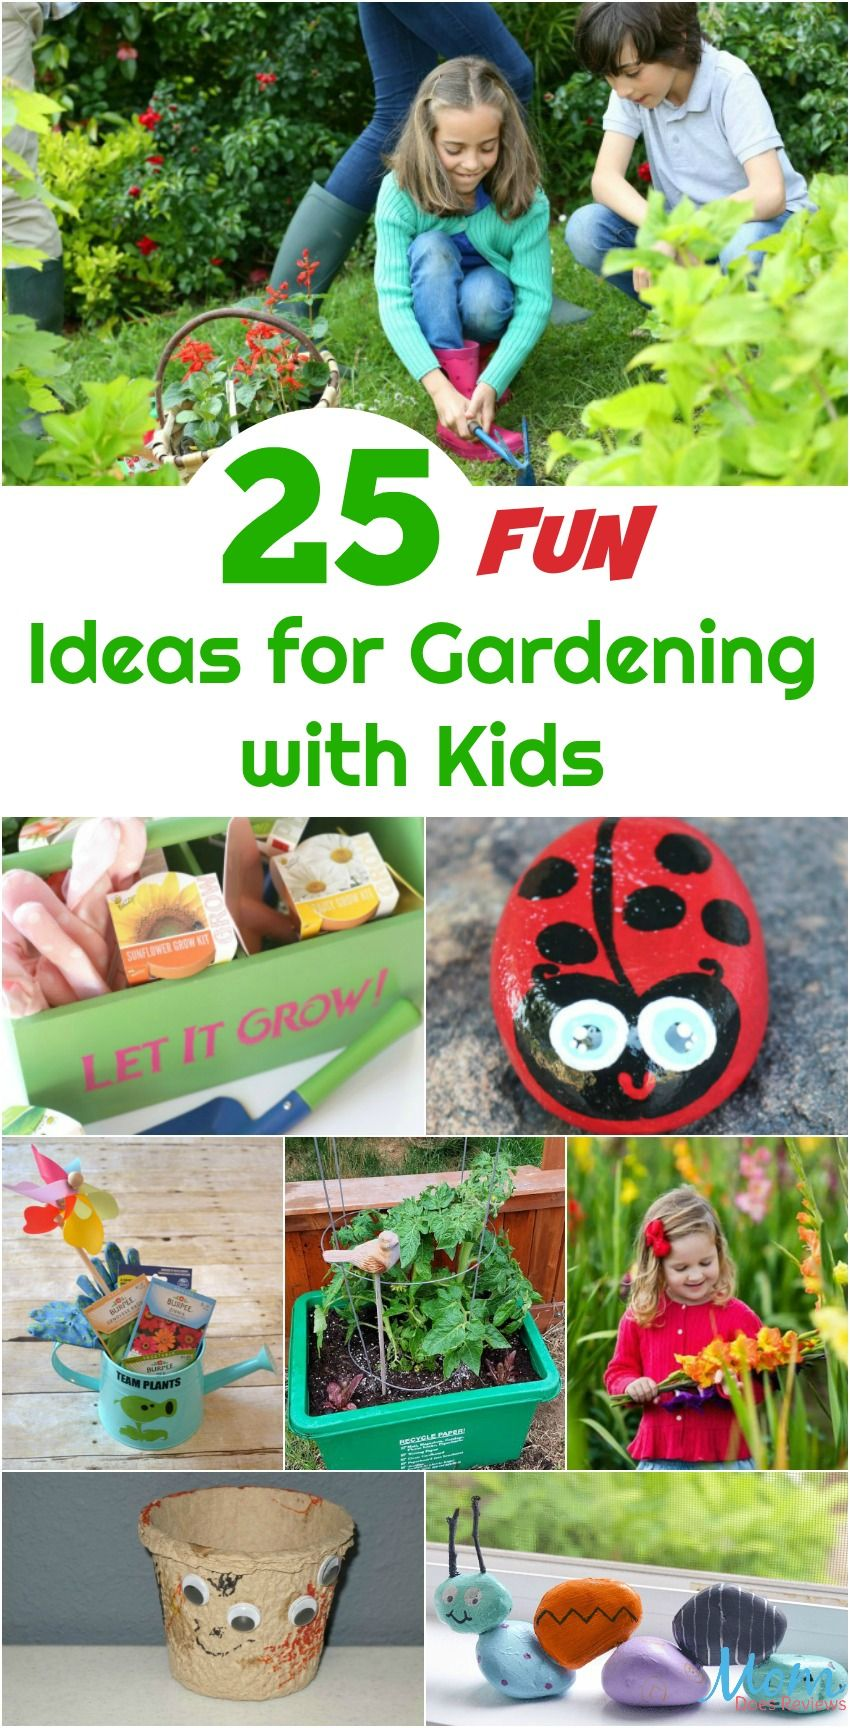 10 Fun Ideas for Gardening with Kids to Spark Their Interest